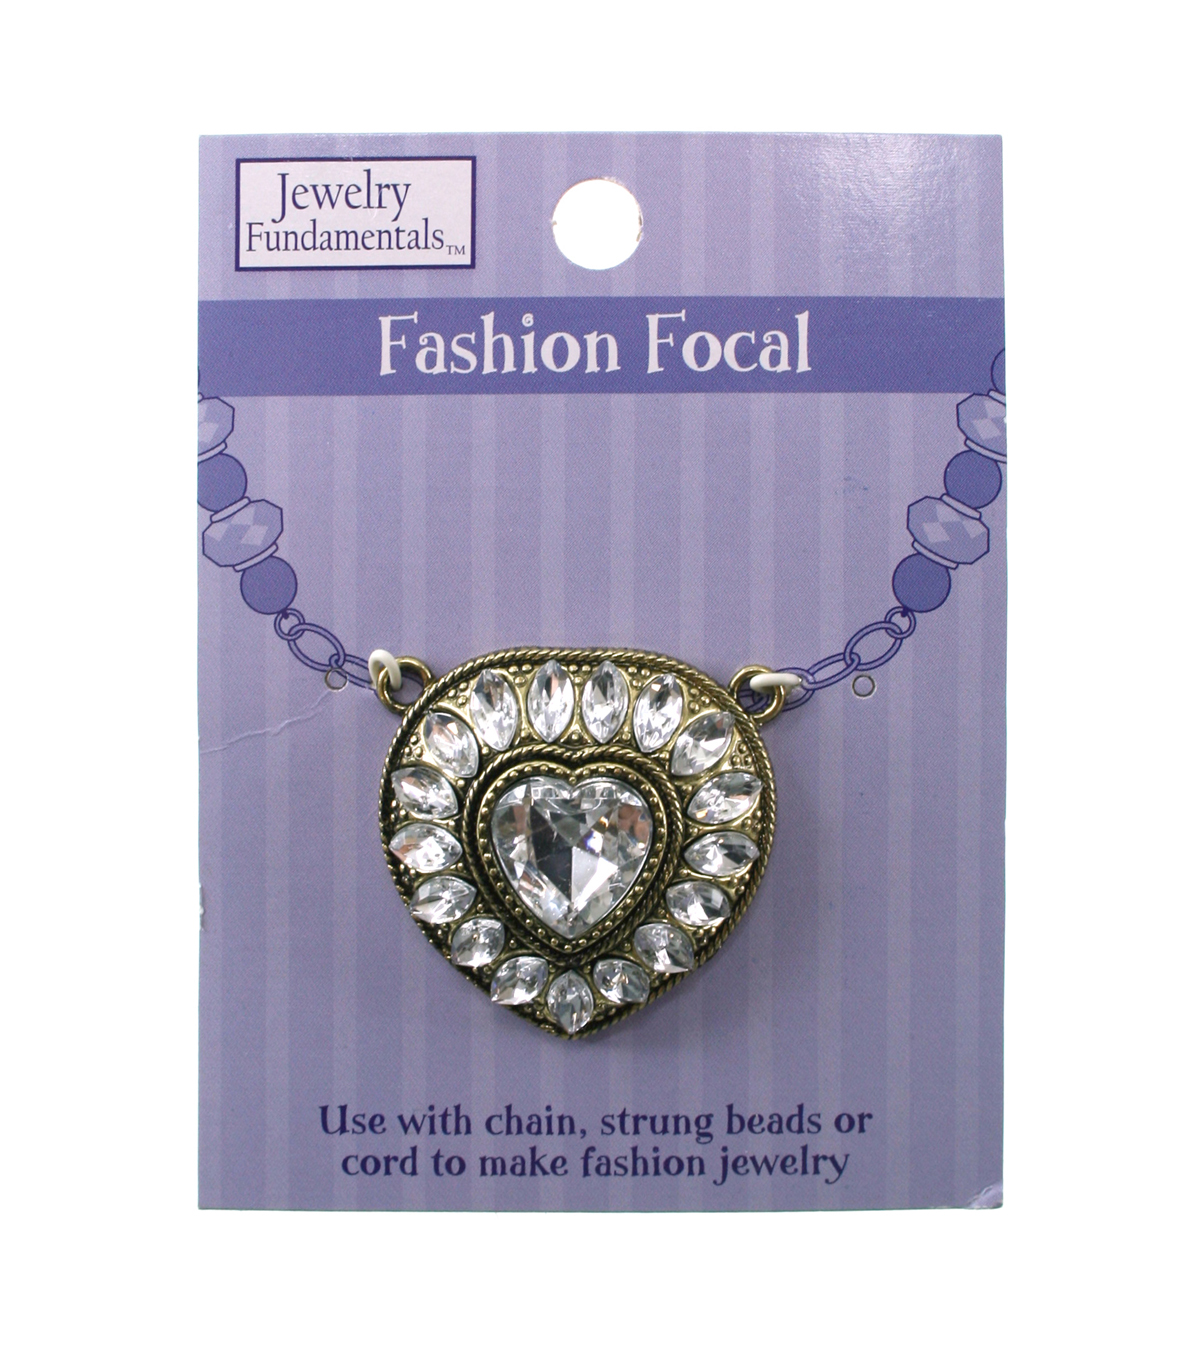 Jewelry Fundamentals Fashion Focal - Heart